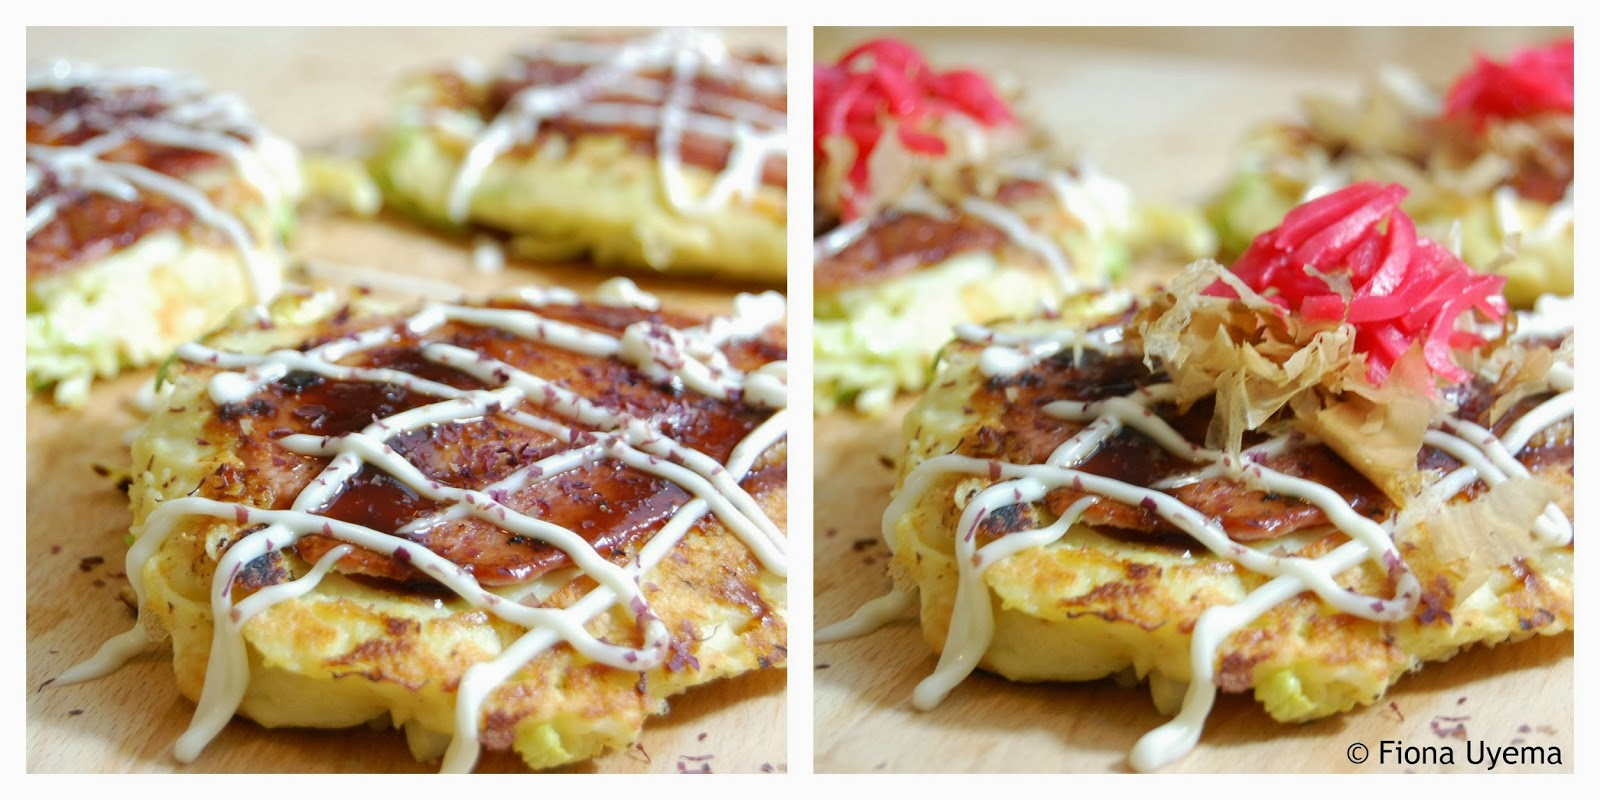 Fionas japanese cooking japanese street food recipe okonomiyaki fionas japanese cooking japanese street food recipe okonomiyaki japanese pancake forumfinder Choice Image